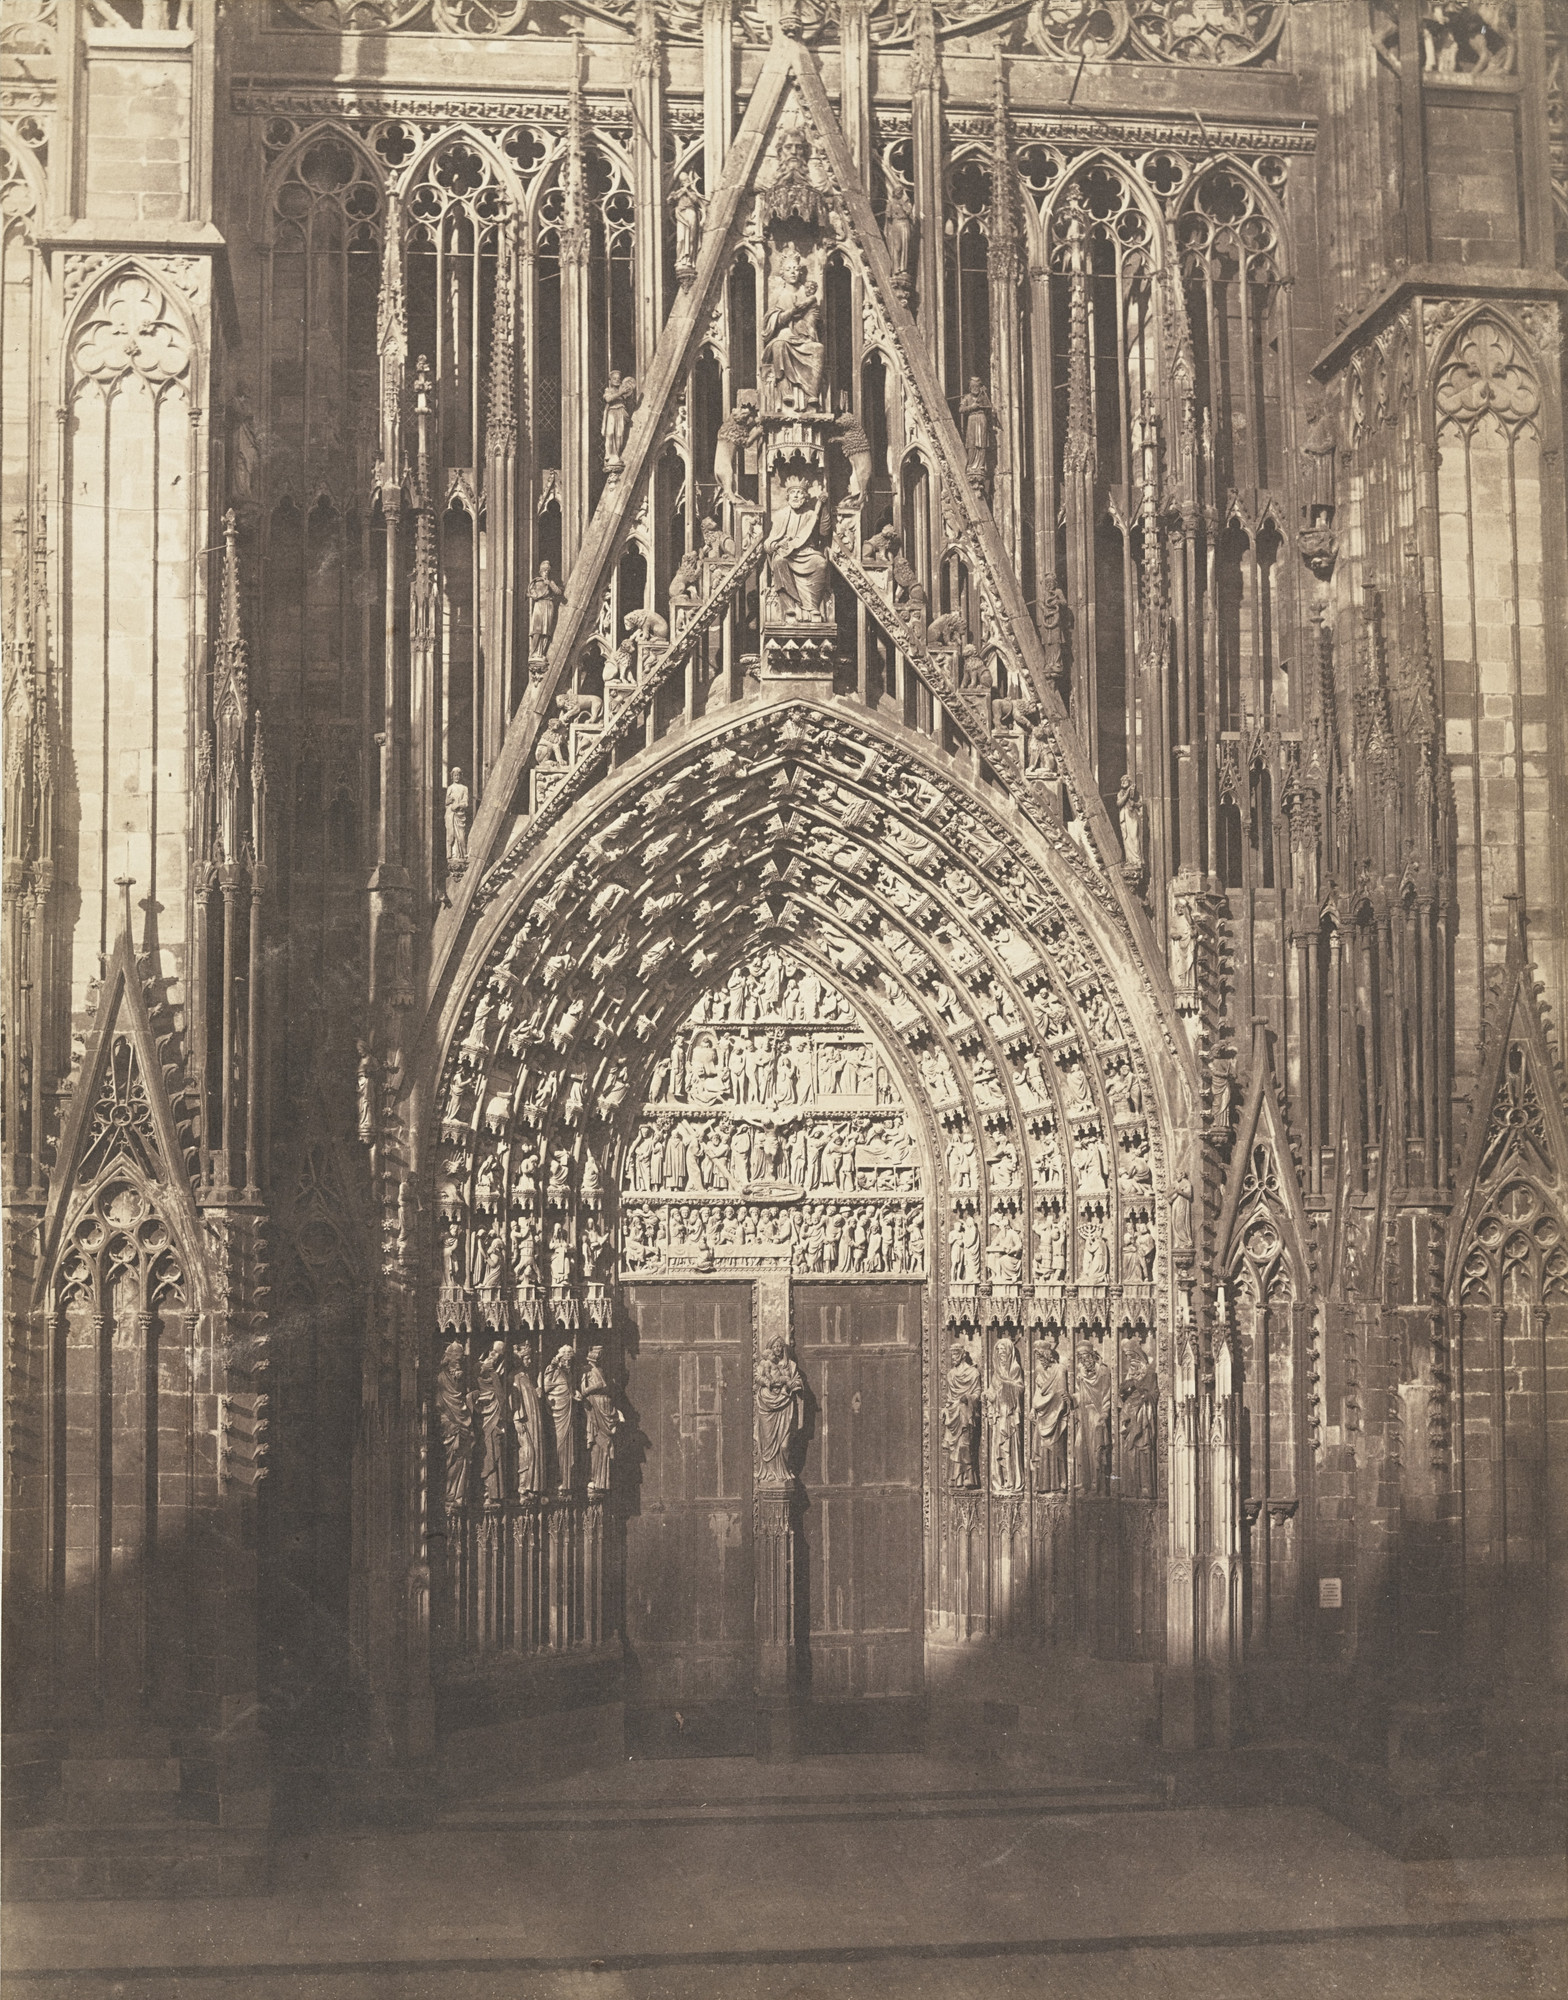 Charles Winter. Strasbourg Cathedral. 1850s